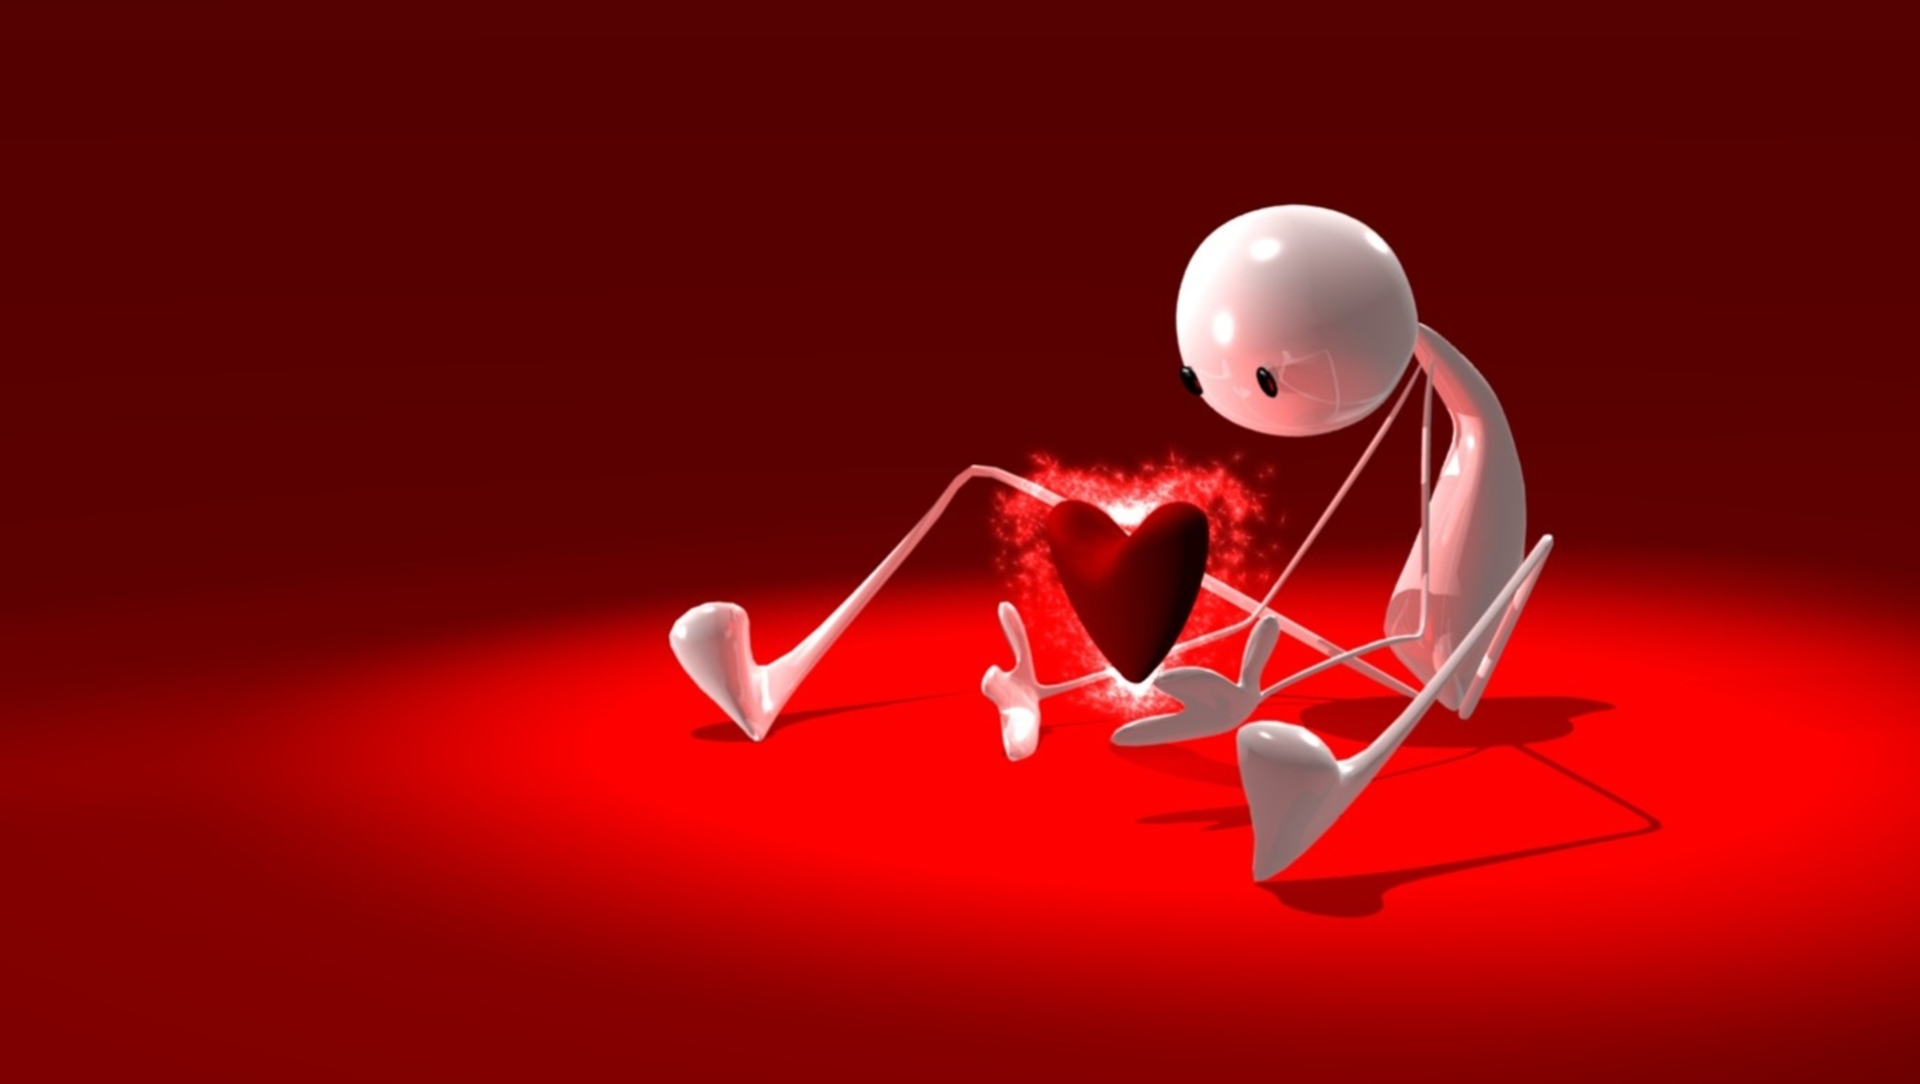 3D Animated Love Images 3 Desktop Wallpaper - Hdlovewall.com